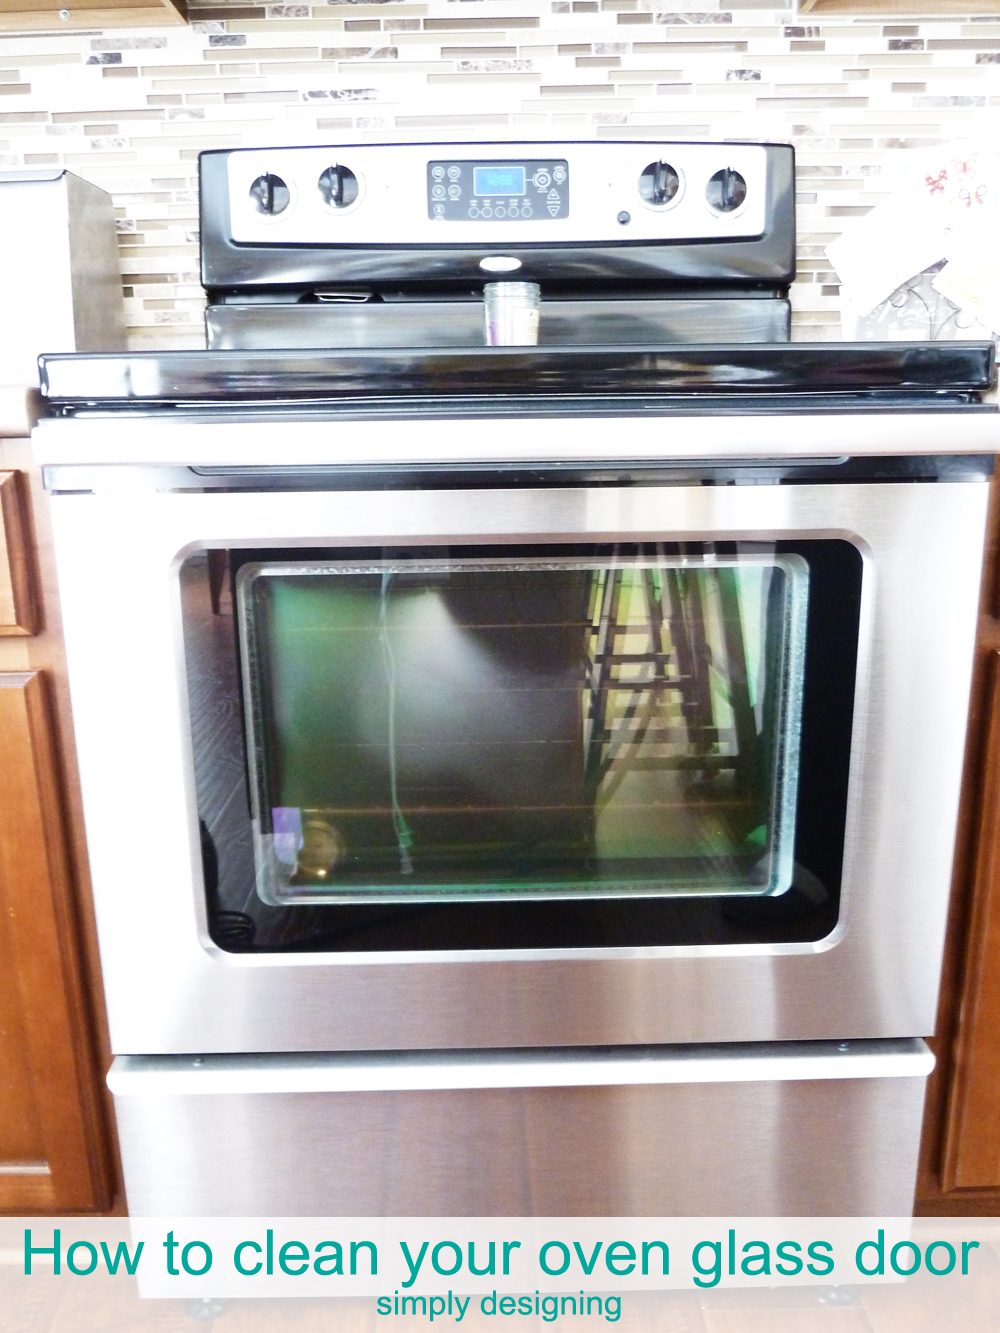 How to clean your Oven Glass Door | simple way to clean dirt and grime off of your glass oven door with a steammachine | #cleaning #kitchencleaning